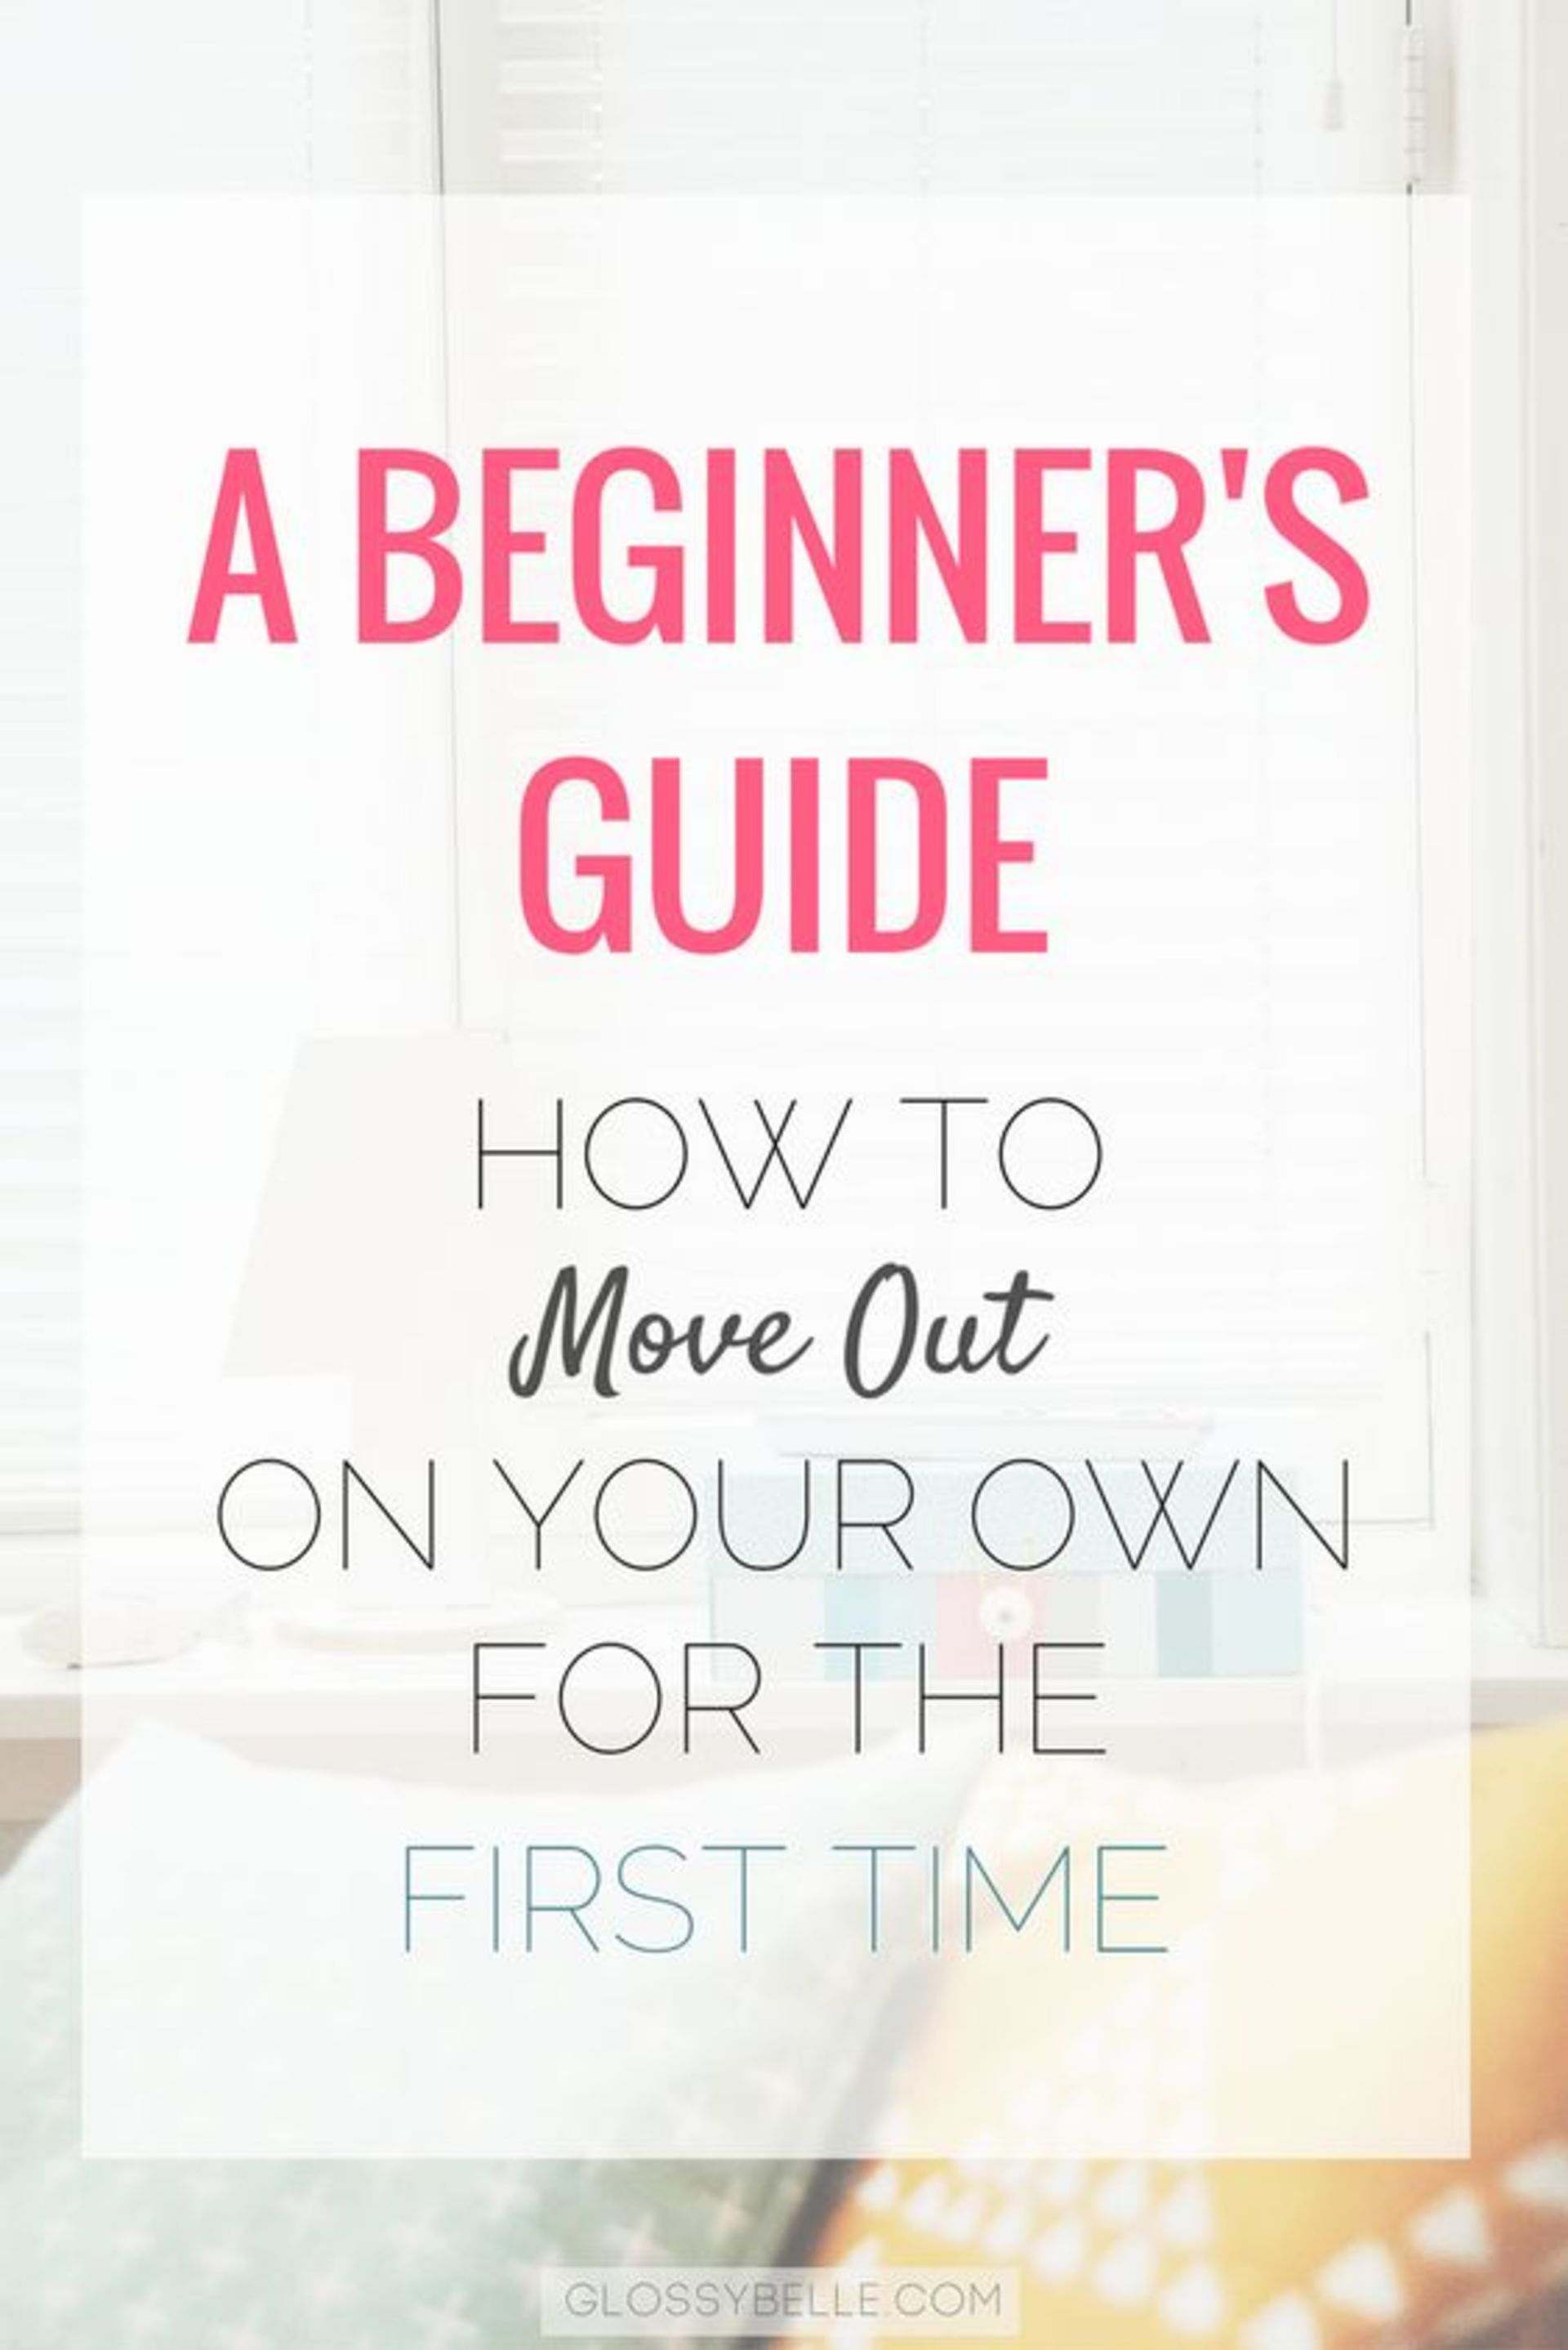 How to move out on your own